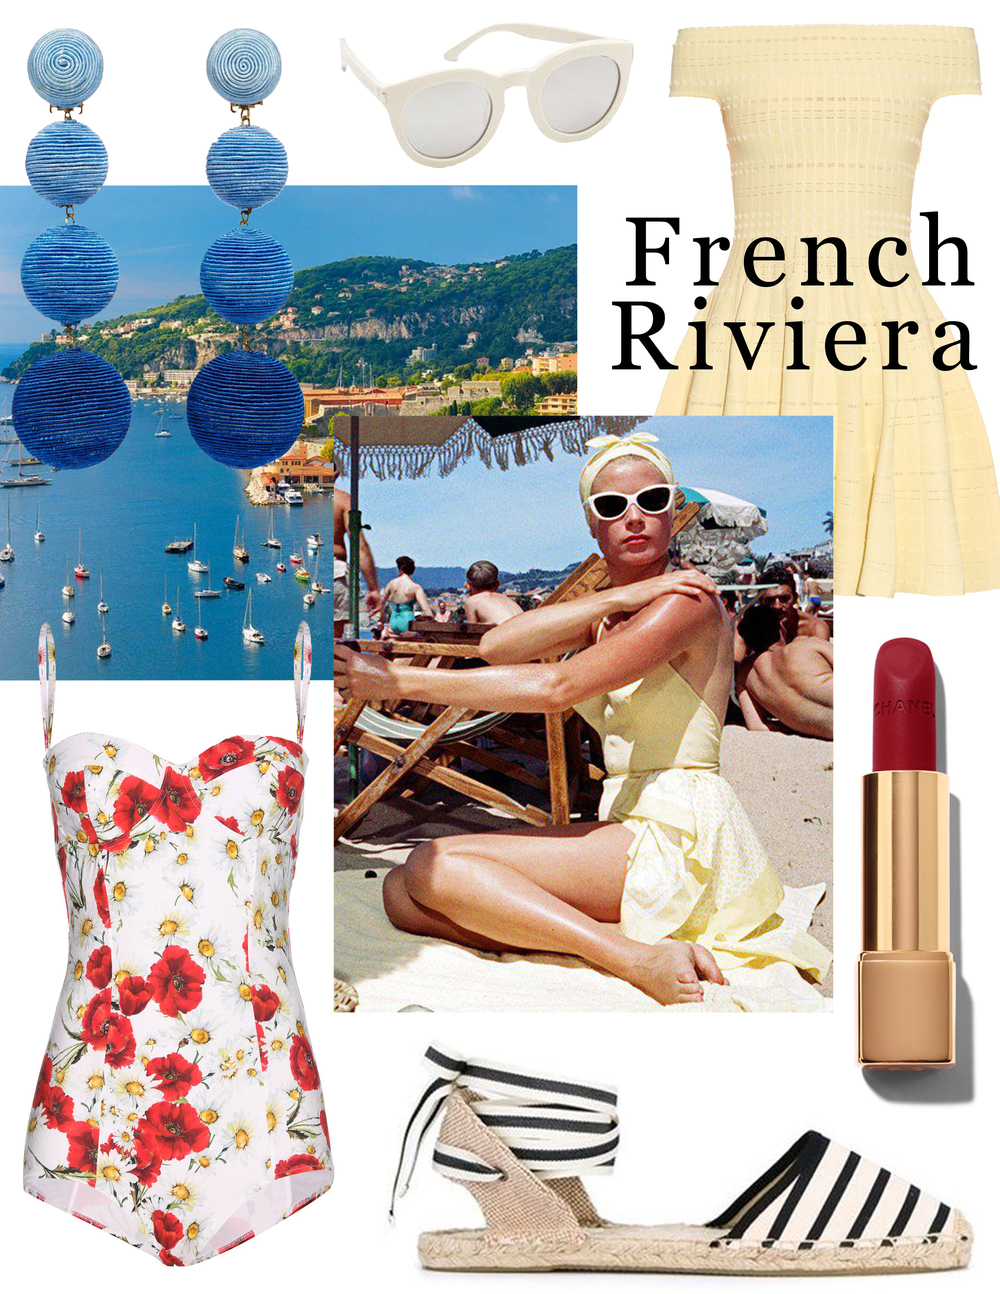 Packing inspiration: a lemondrop dress à la Grace Kelly ( Alexander McQueen ); white sunglasses ( Saint Laurent ); silk thread earrings ( REBECCA DE RAVENEL ); a retro silhouette swimsuit ( Dolce & Gabbana ); lace-up espadrilles ( Soludos ); a long-wear lipstick ( Chanel ).